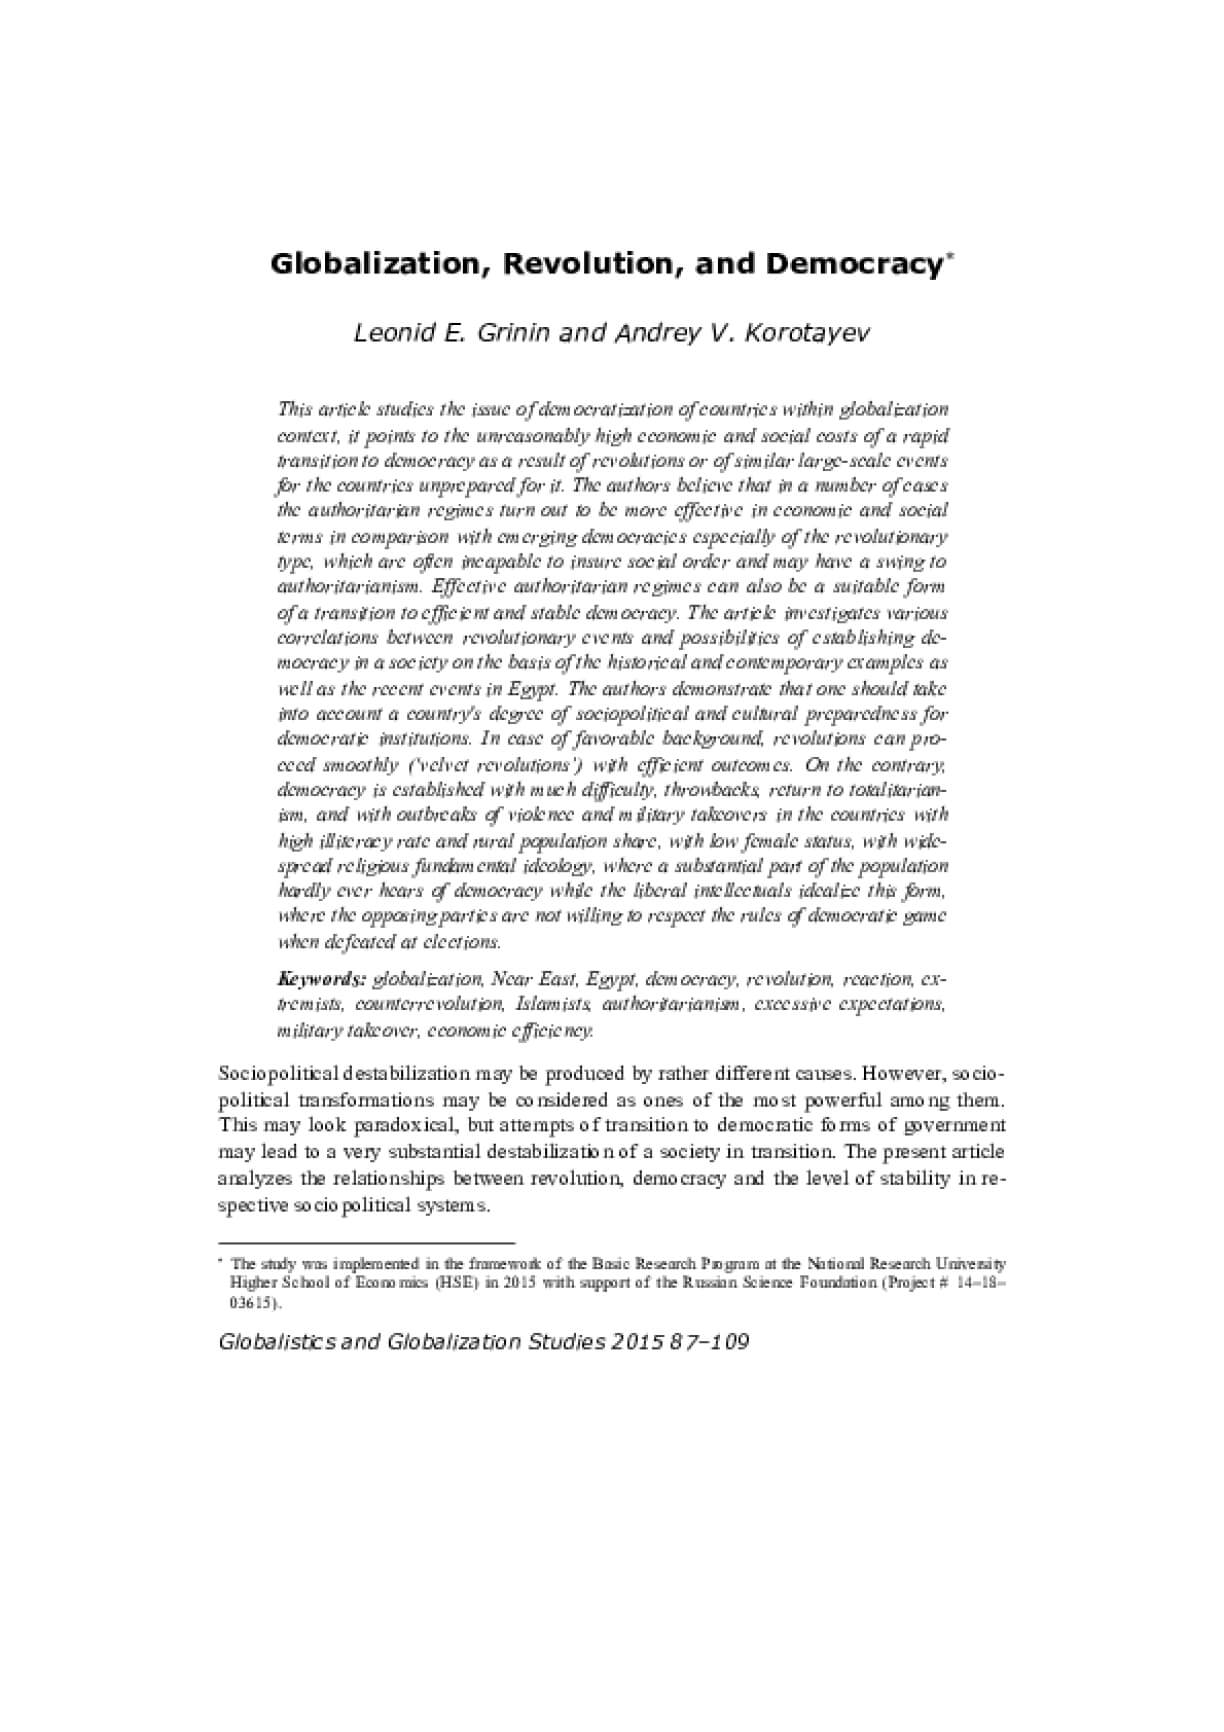 Globalization, Revolutions, and Democracy